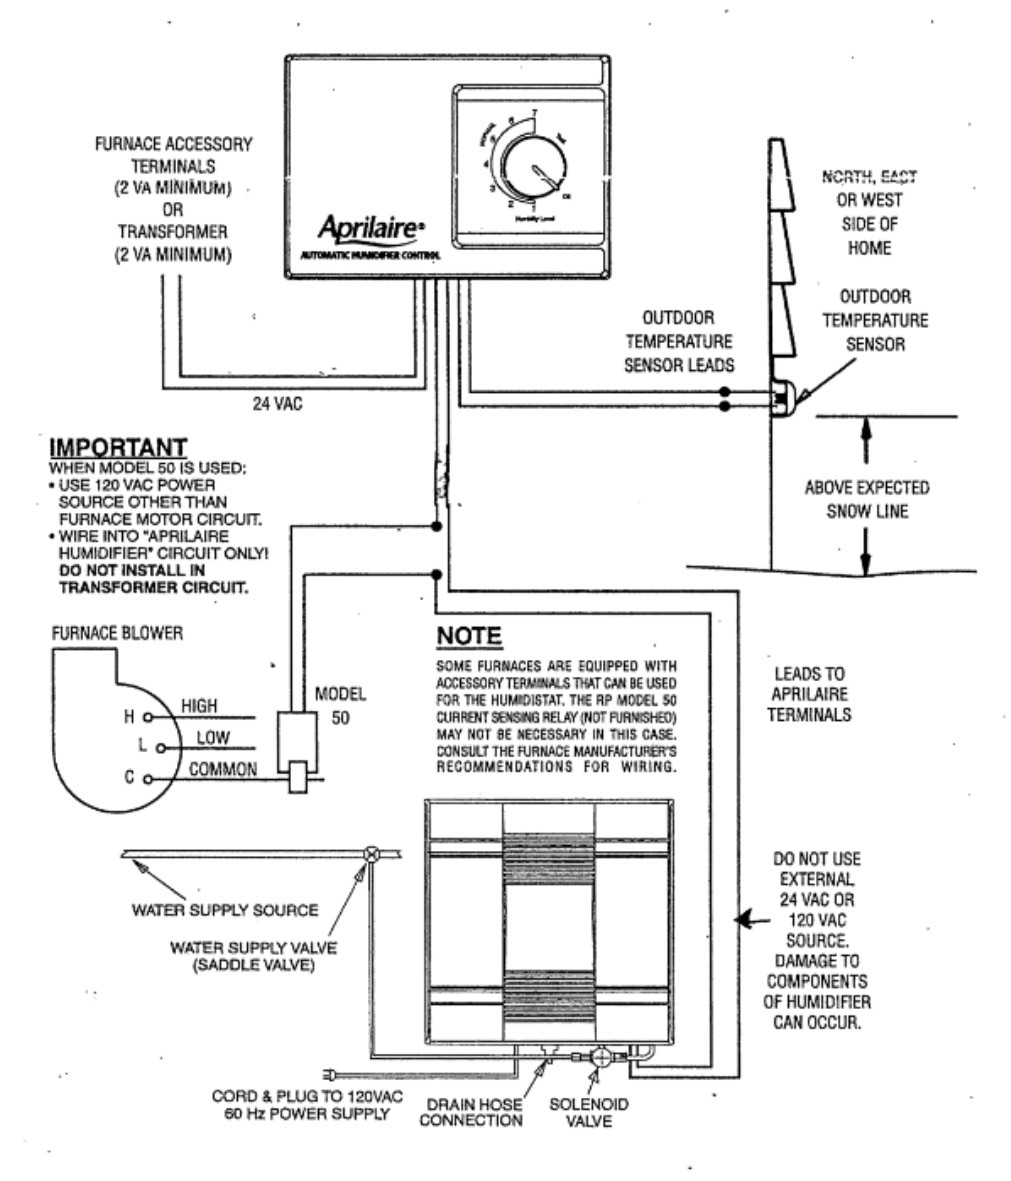 aprilaire wiring diagram Collection-aprilaire 600 wiring diagram Download Aprilaire Wiring Diagram 19 d 20-k